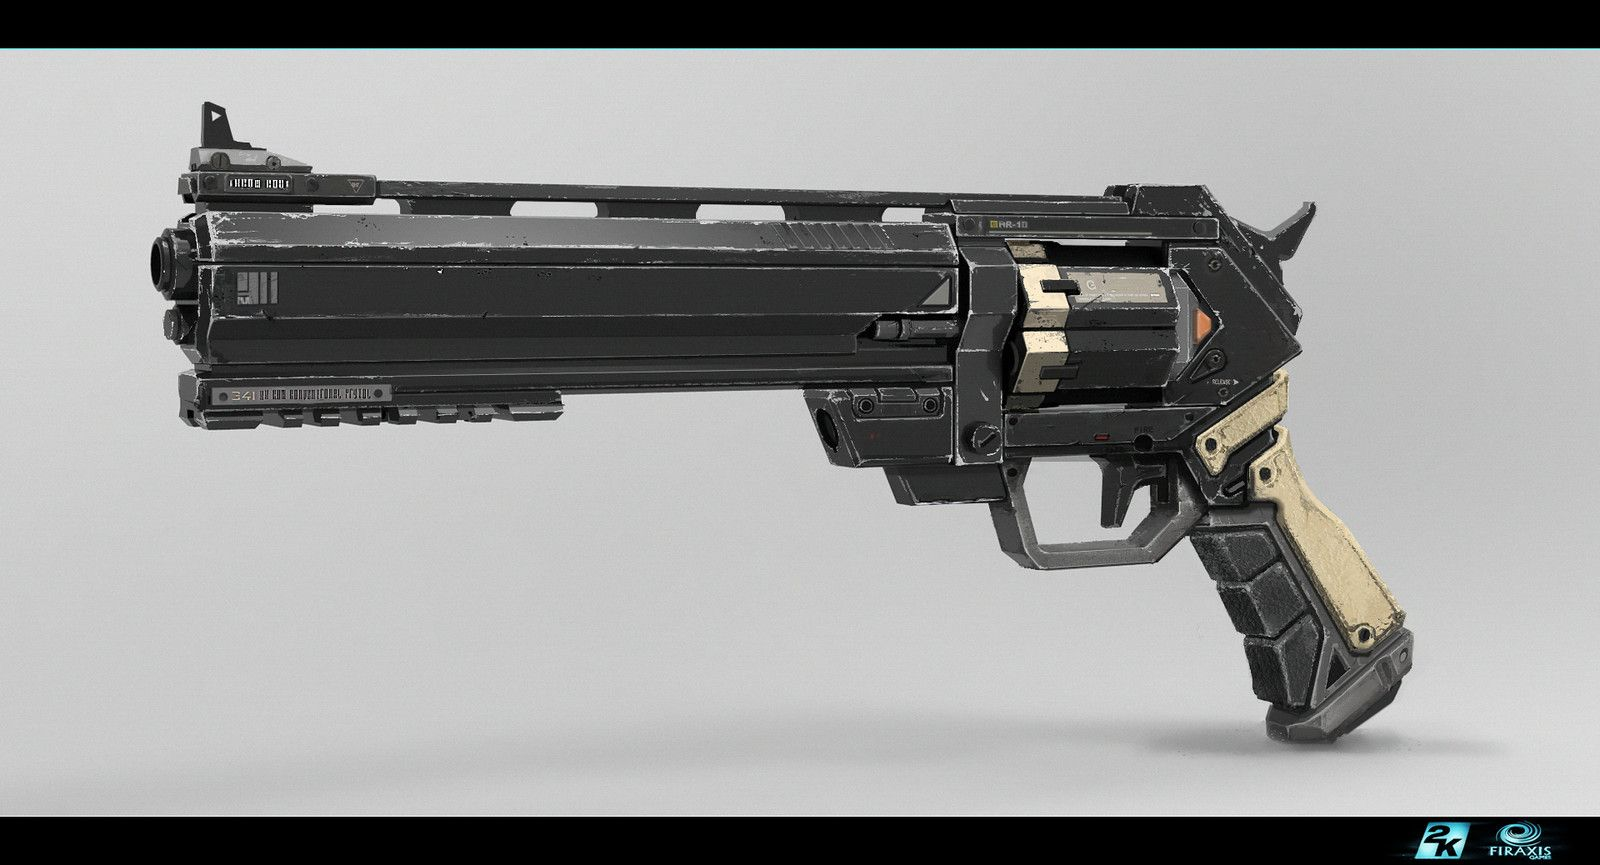 Spp 1 underwater pistol - Conventional Pistol Xcom2 Dongmin Shin On Artstation At Https Www